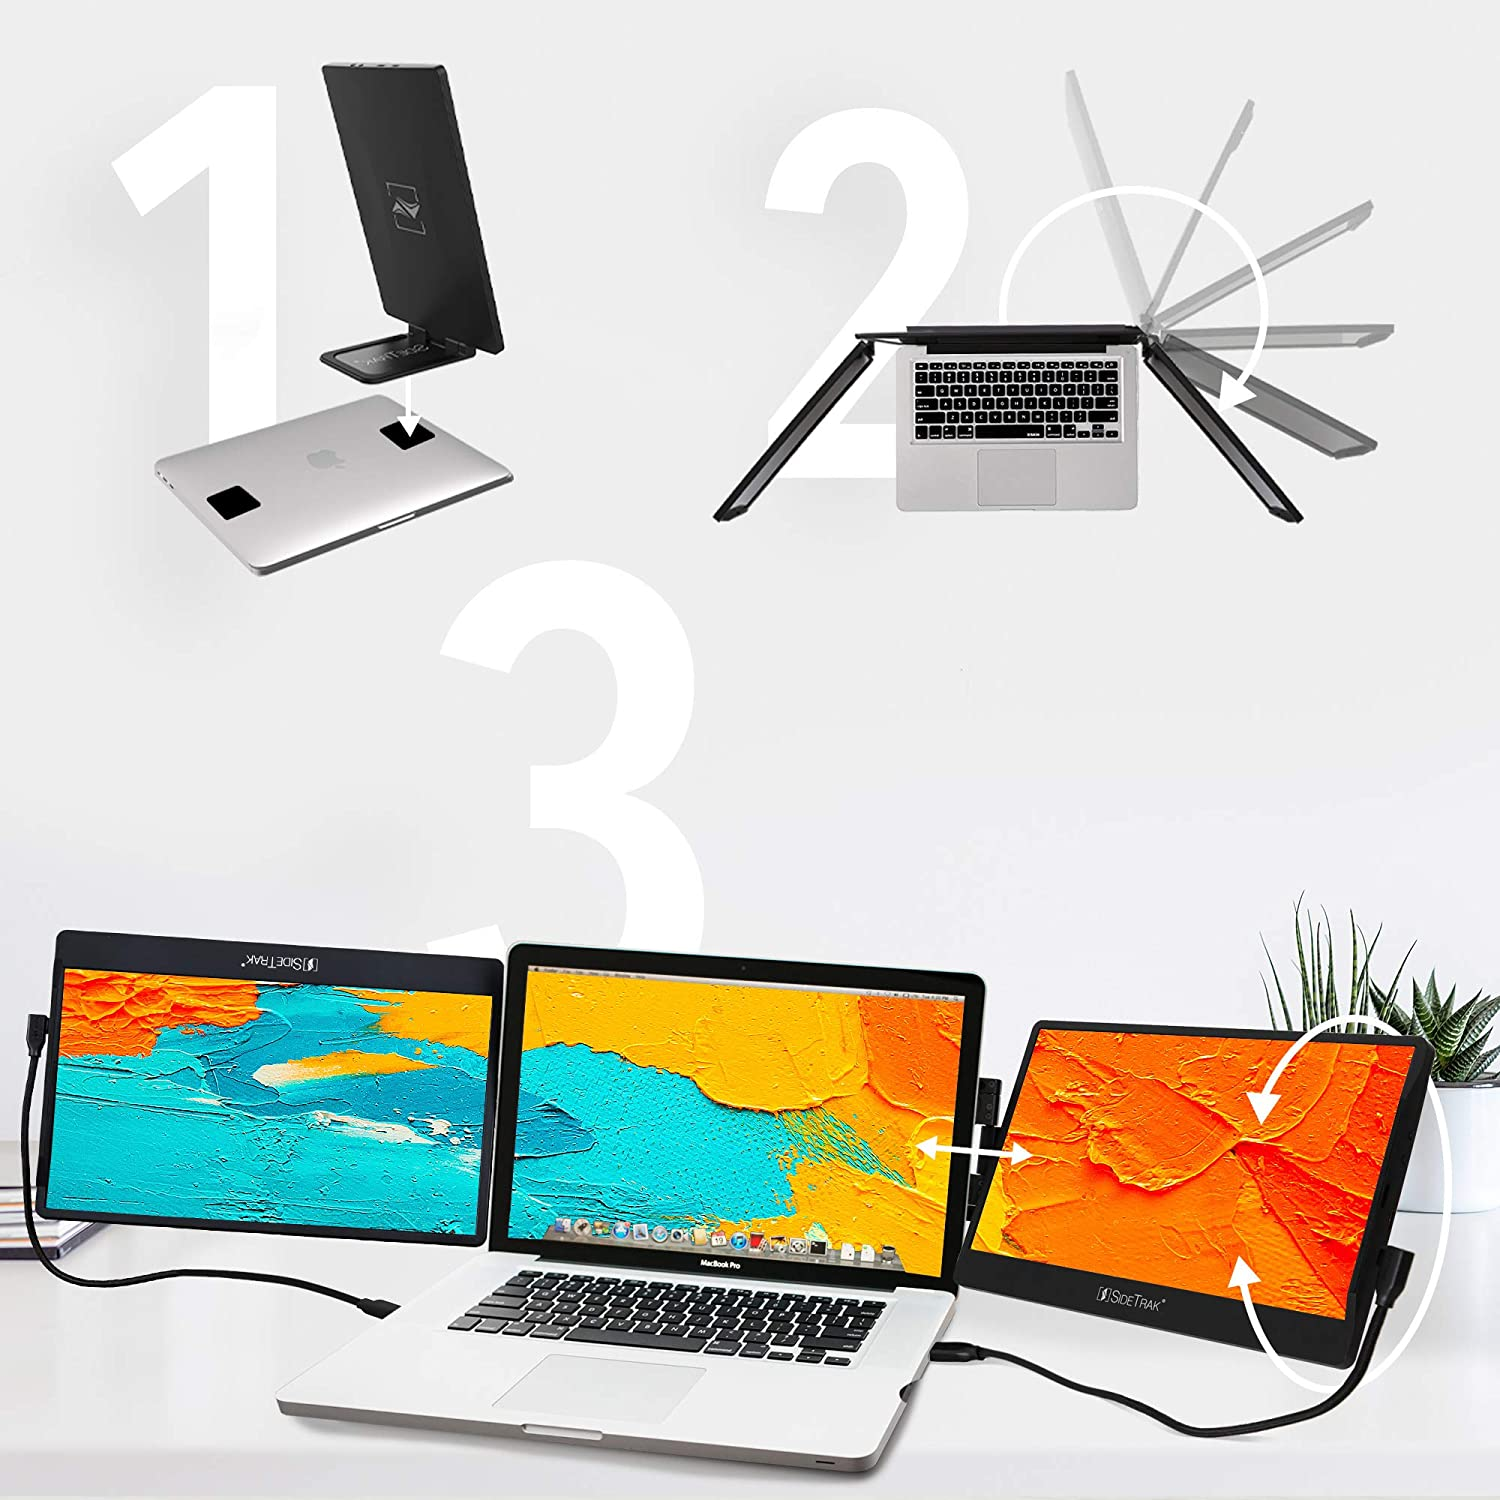 """SideTrak Swivel Triple Portable Monitor for Laptop   Attachable 12.5"""" FHD IPS Rotating Three Screen Laptop   Compatible with Mac, PC, & Chrome   Powered by USB or Mini HDMI"""